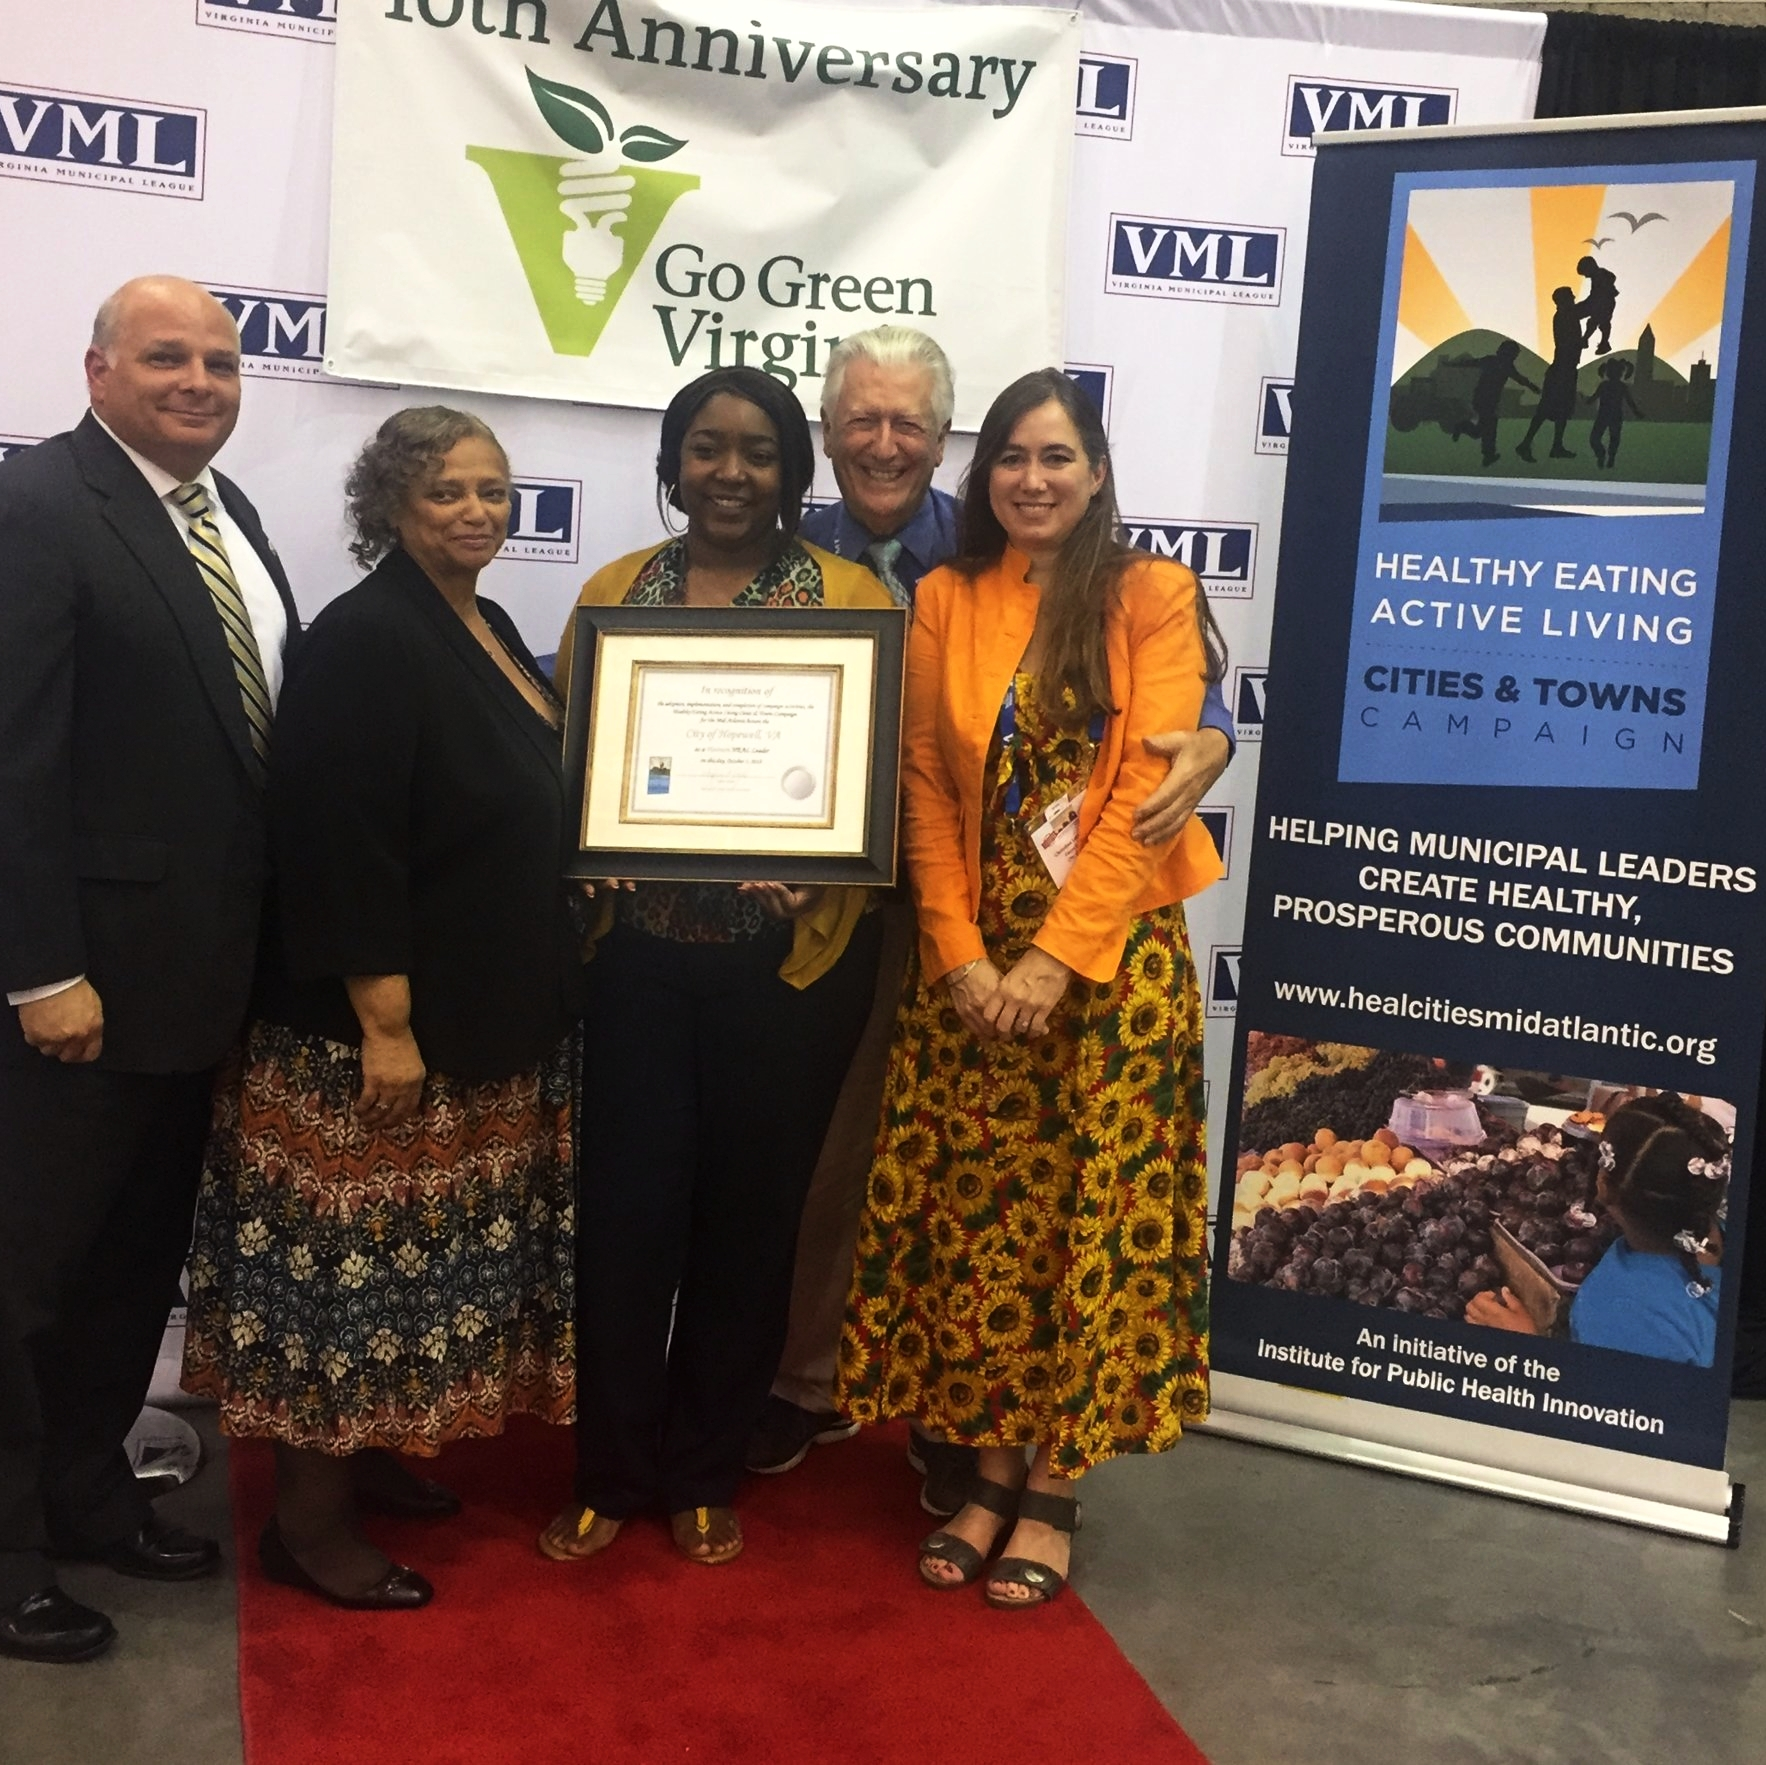 Featured above: The City of Hopewell receiving Platinum recognition at the 2018 Virginia Municipal League Conference in Hampton, Virginia.